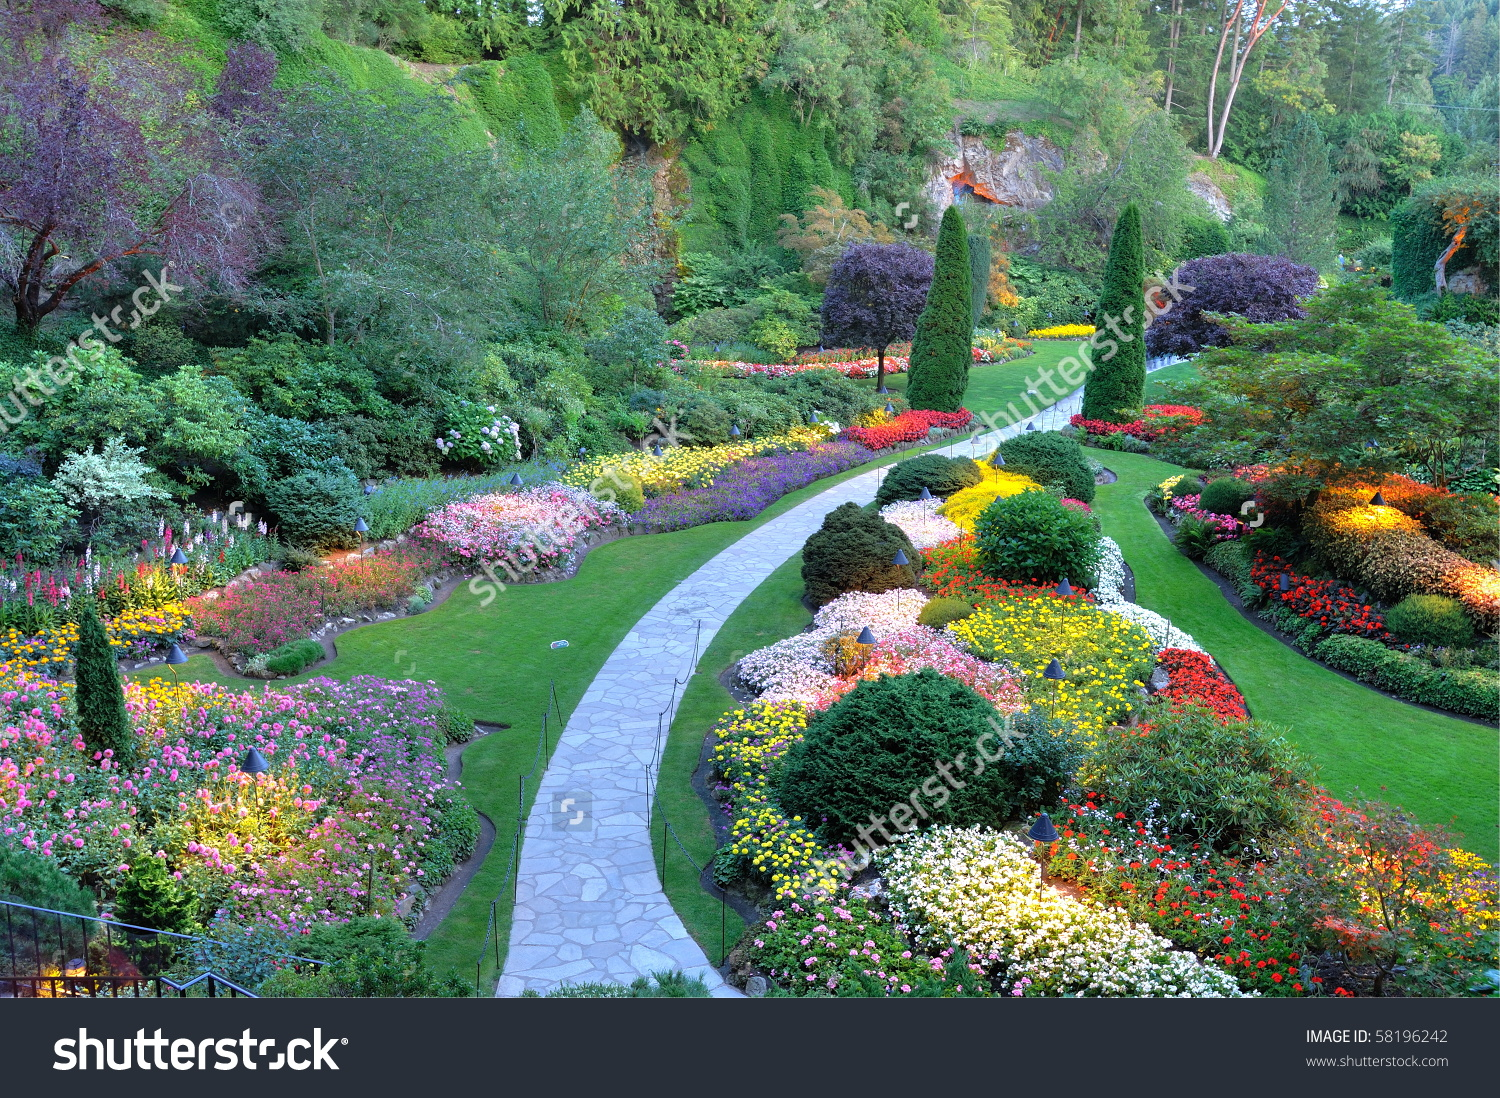 Summer Beautiful Sunken Garden Night Scene Stock Photo 58196242.